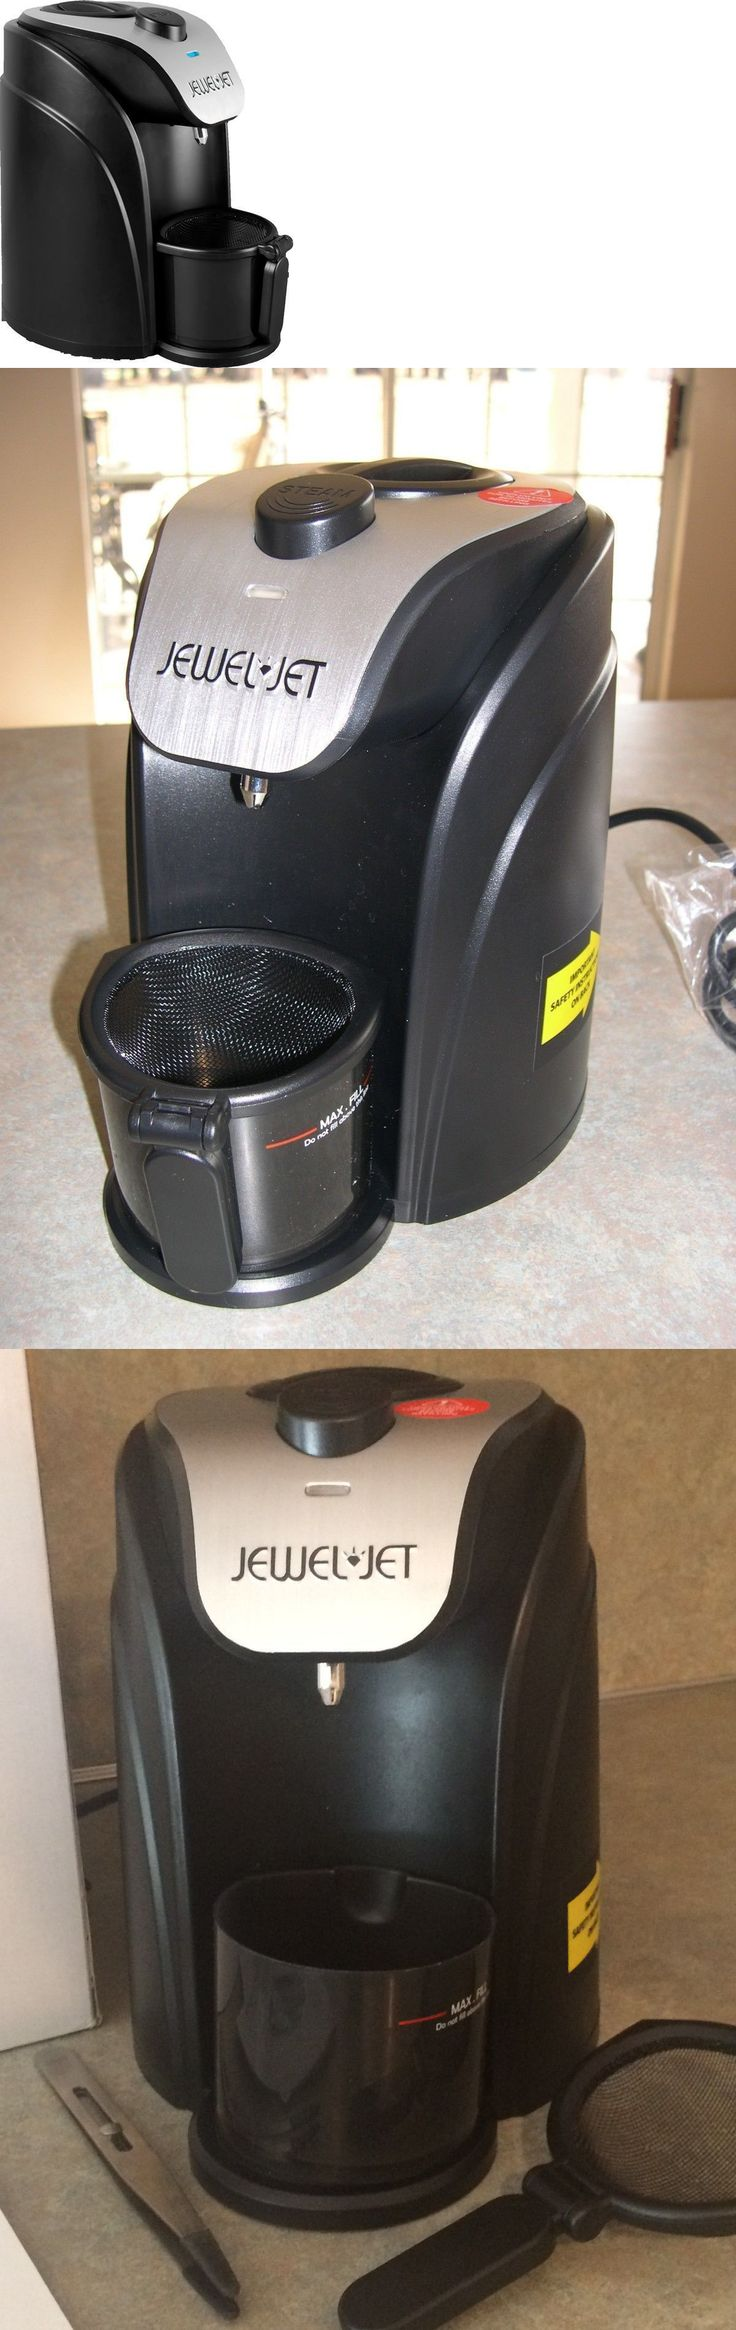 Jewelry Cleaners and Polish 67720: Jewel Jet Jewelry Steam Cleaner--Dented Box--Never Used -> BUY IT NOW ONLY: $79.99 on eBay!